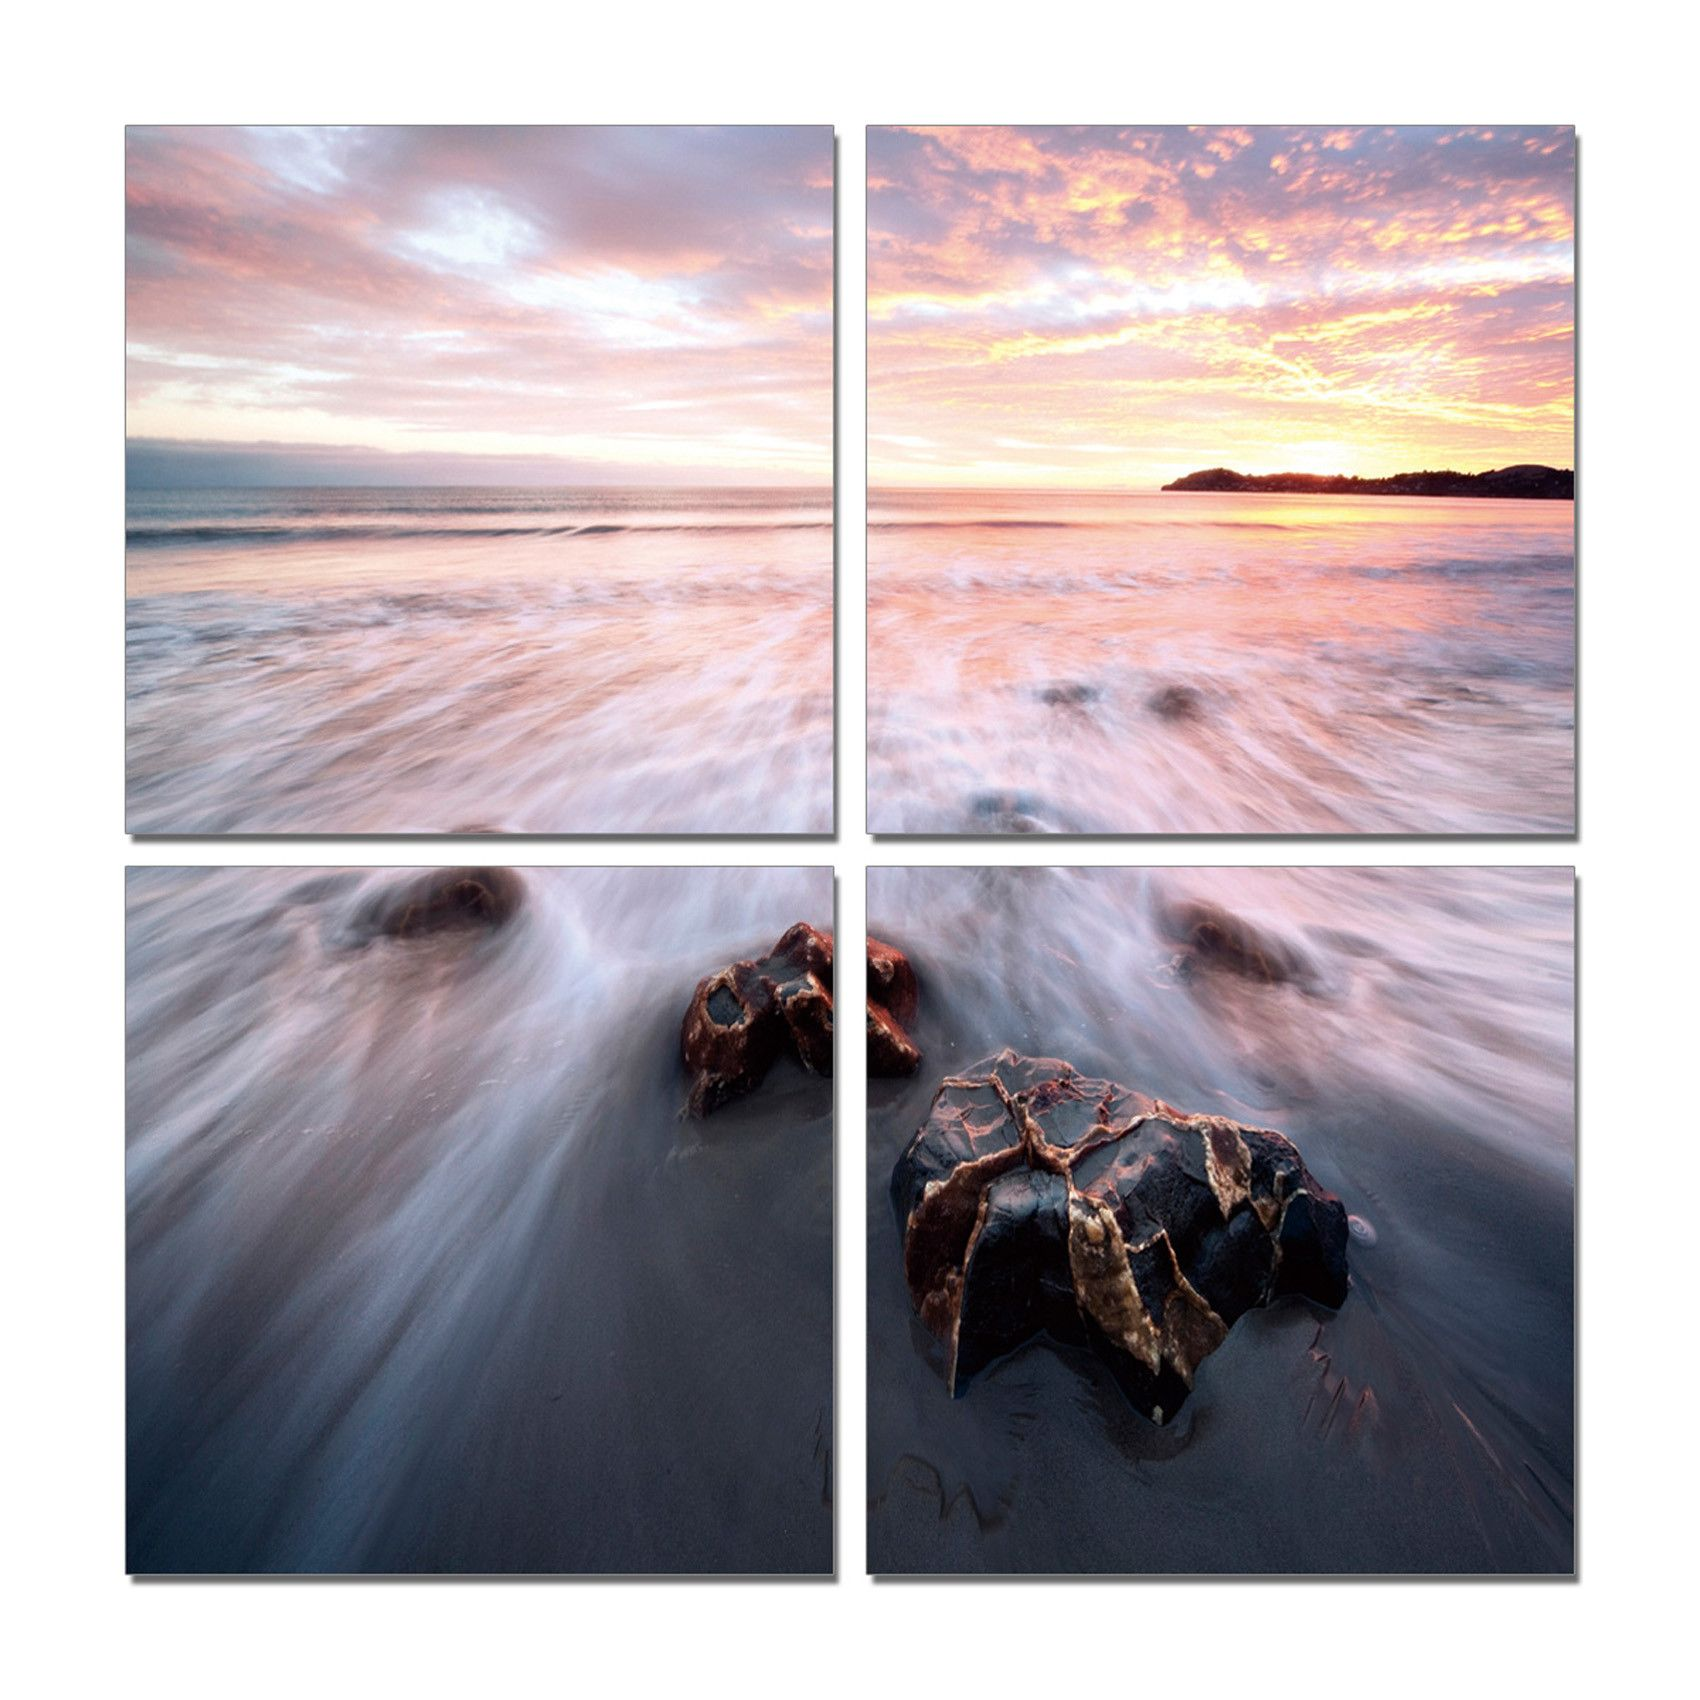 Tides | To be, Vinyls and Home - The tides roll in and out, endlessly. Let this beautifully captured time  lapsed photo